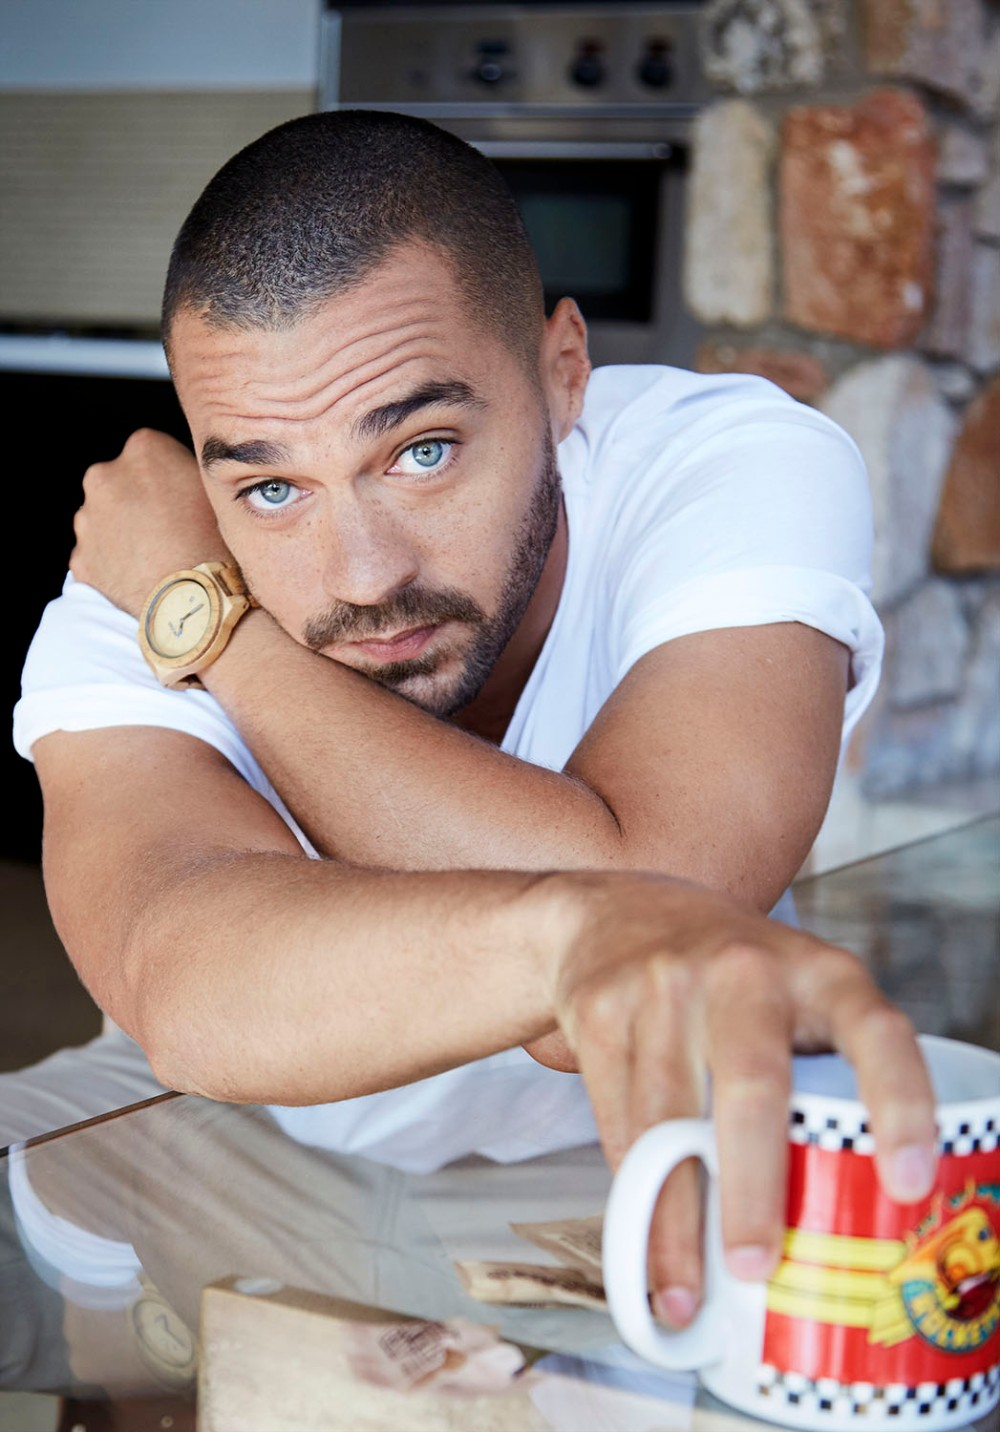 jesse-williams-photographed-by-mei-tao-sexiest-men-alive-people-magazine-2016